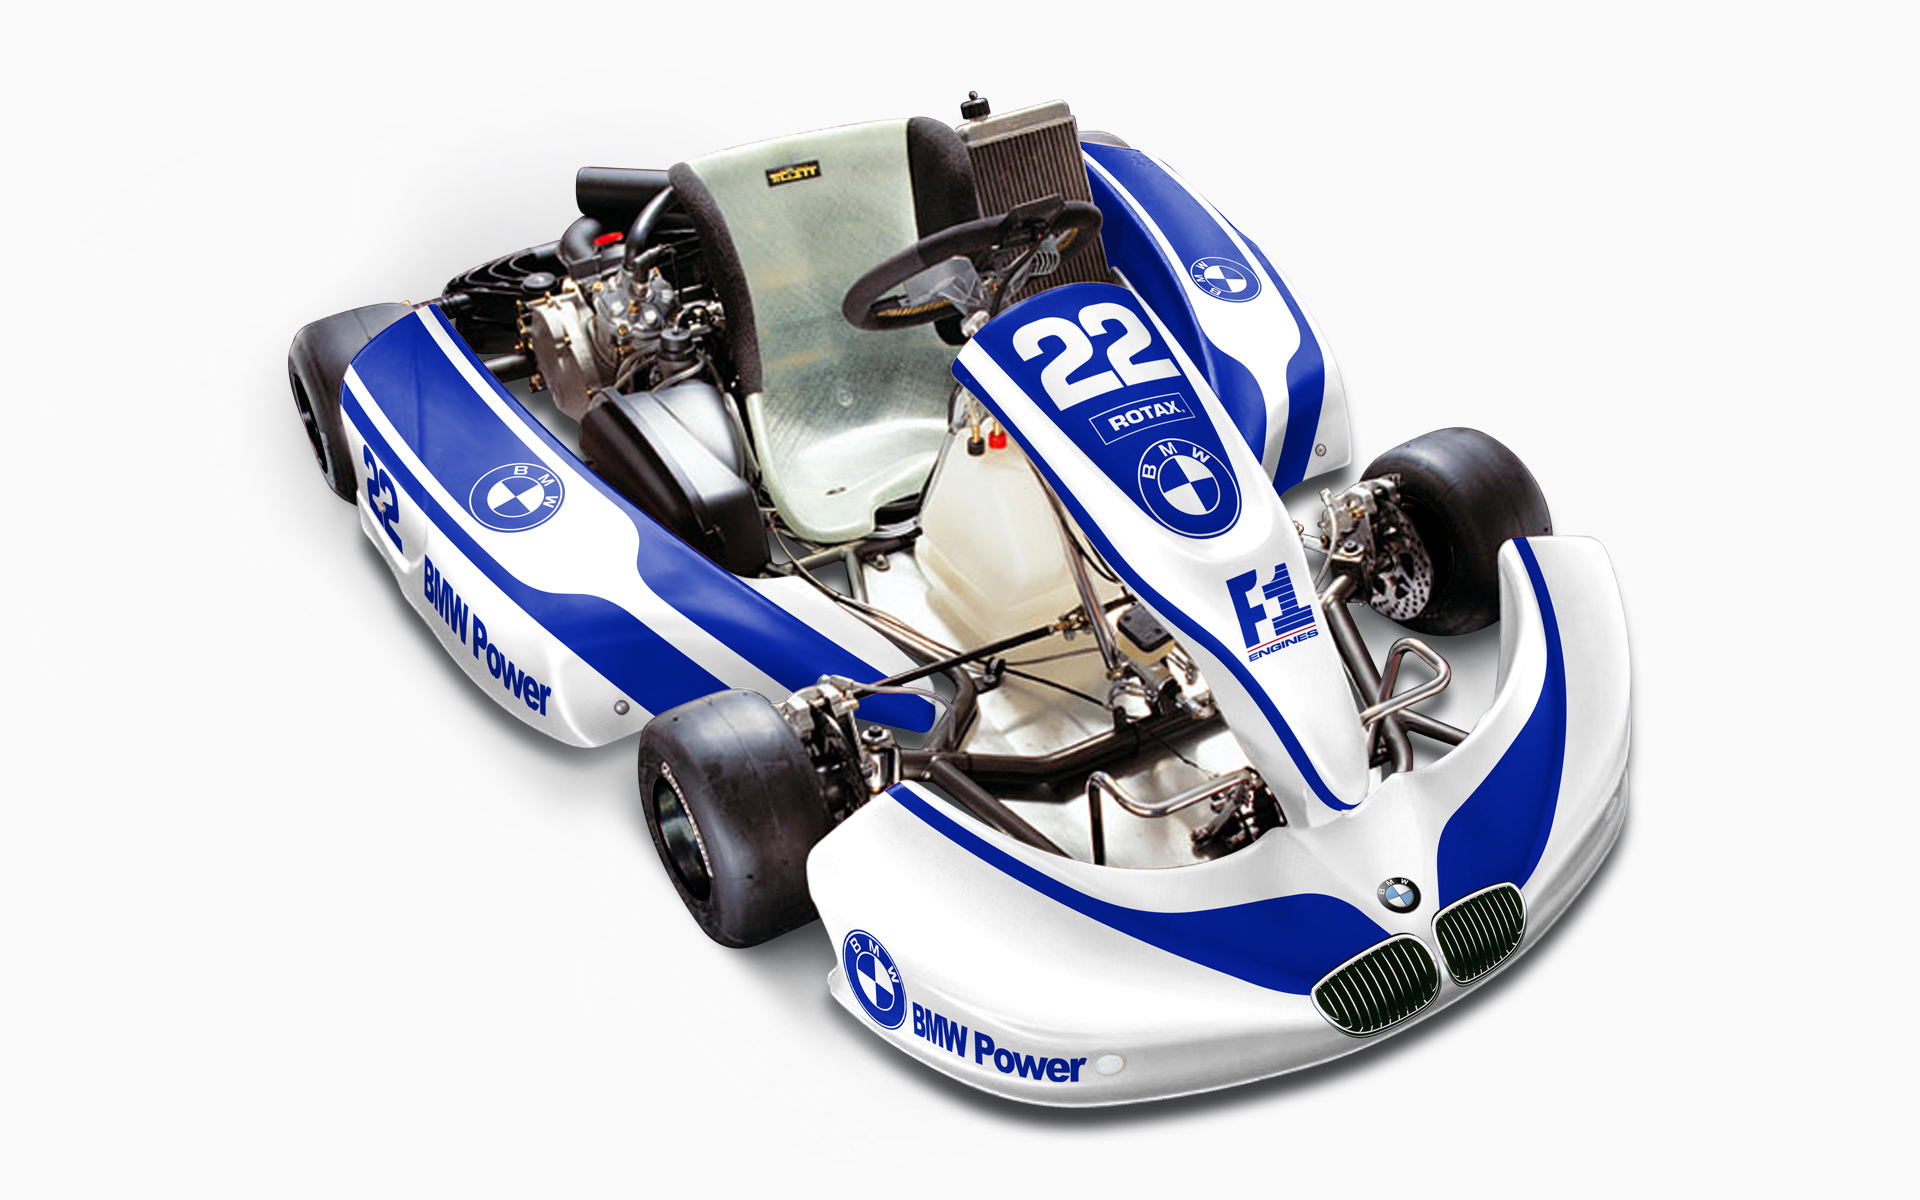 2005 PTG Racing F1-Air Rotax Kart Livery Visualization